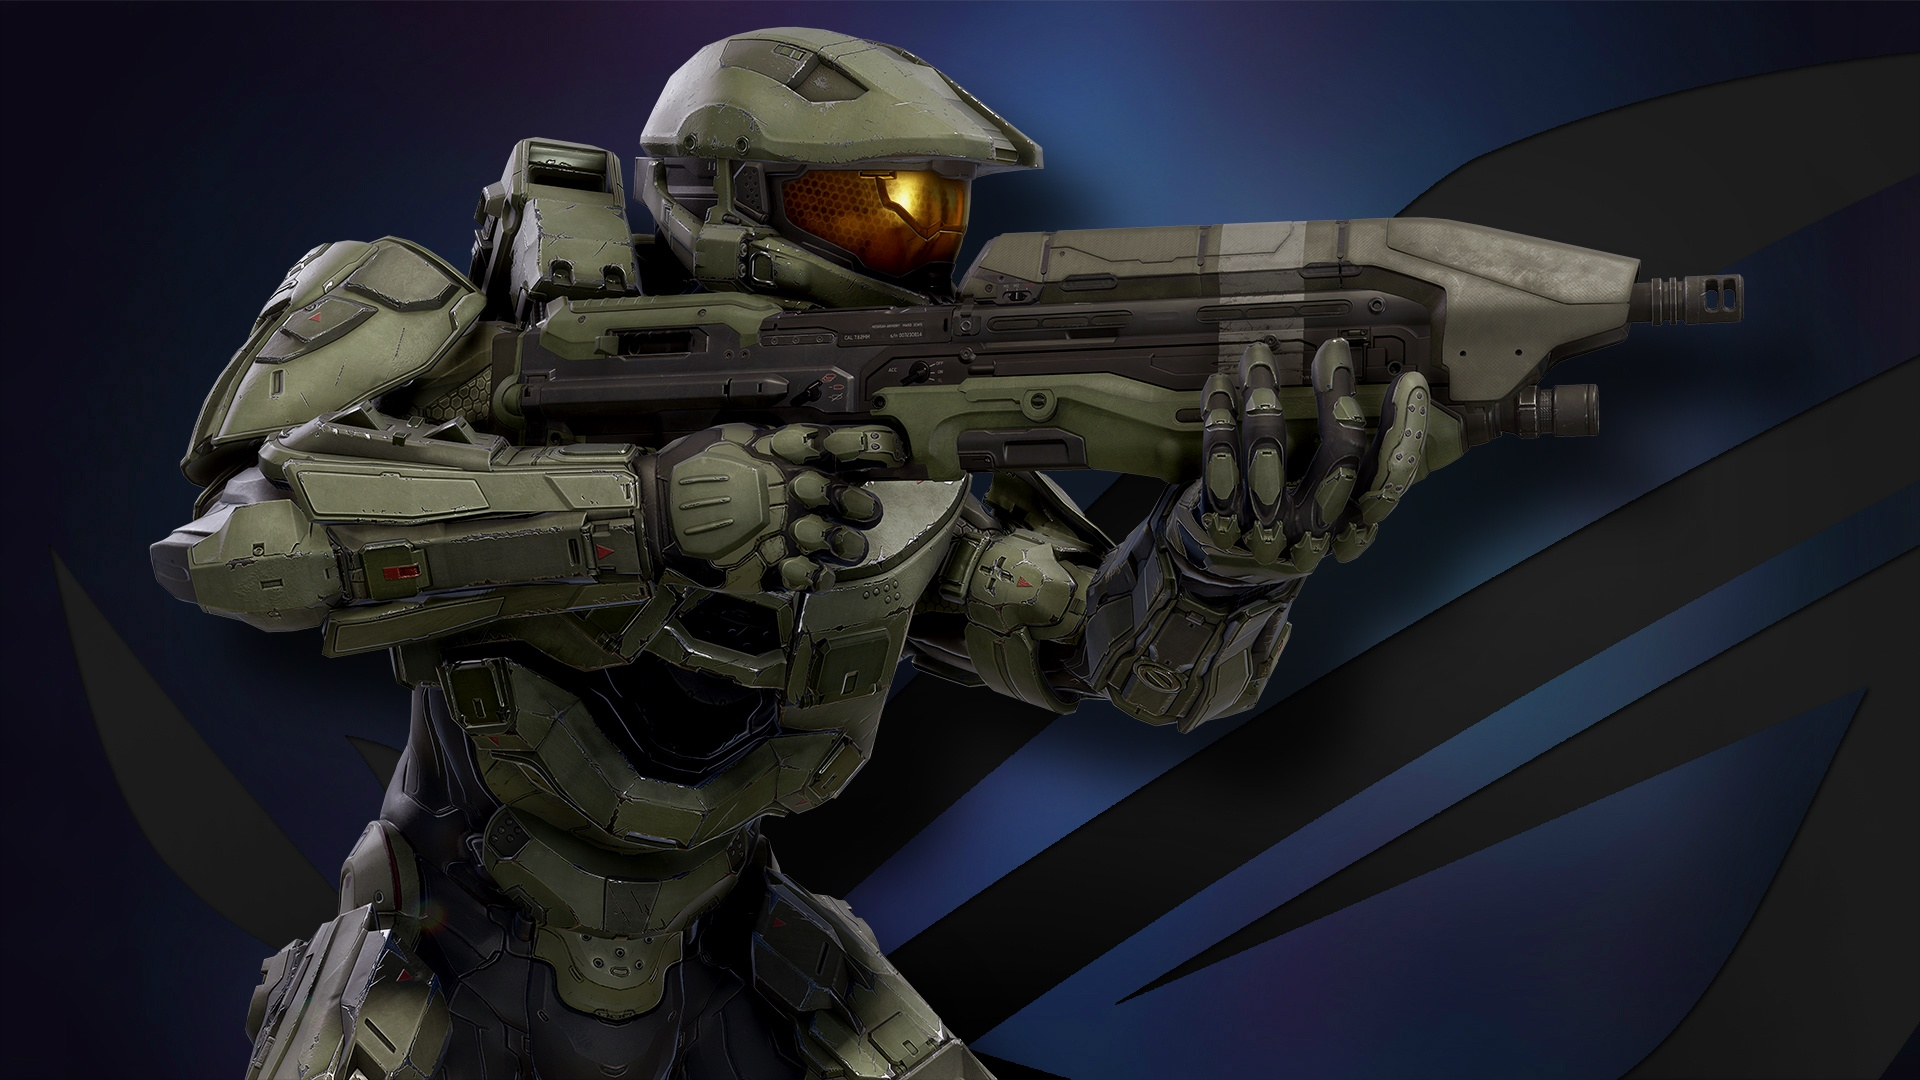 Rog Animated Wallpaper Master Chief Rog Wallpapers In Jpg Format For Free Download